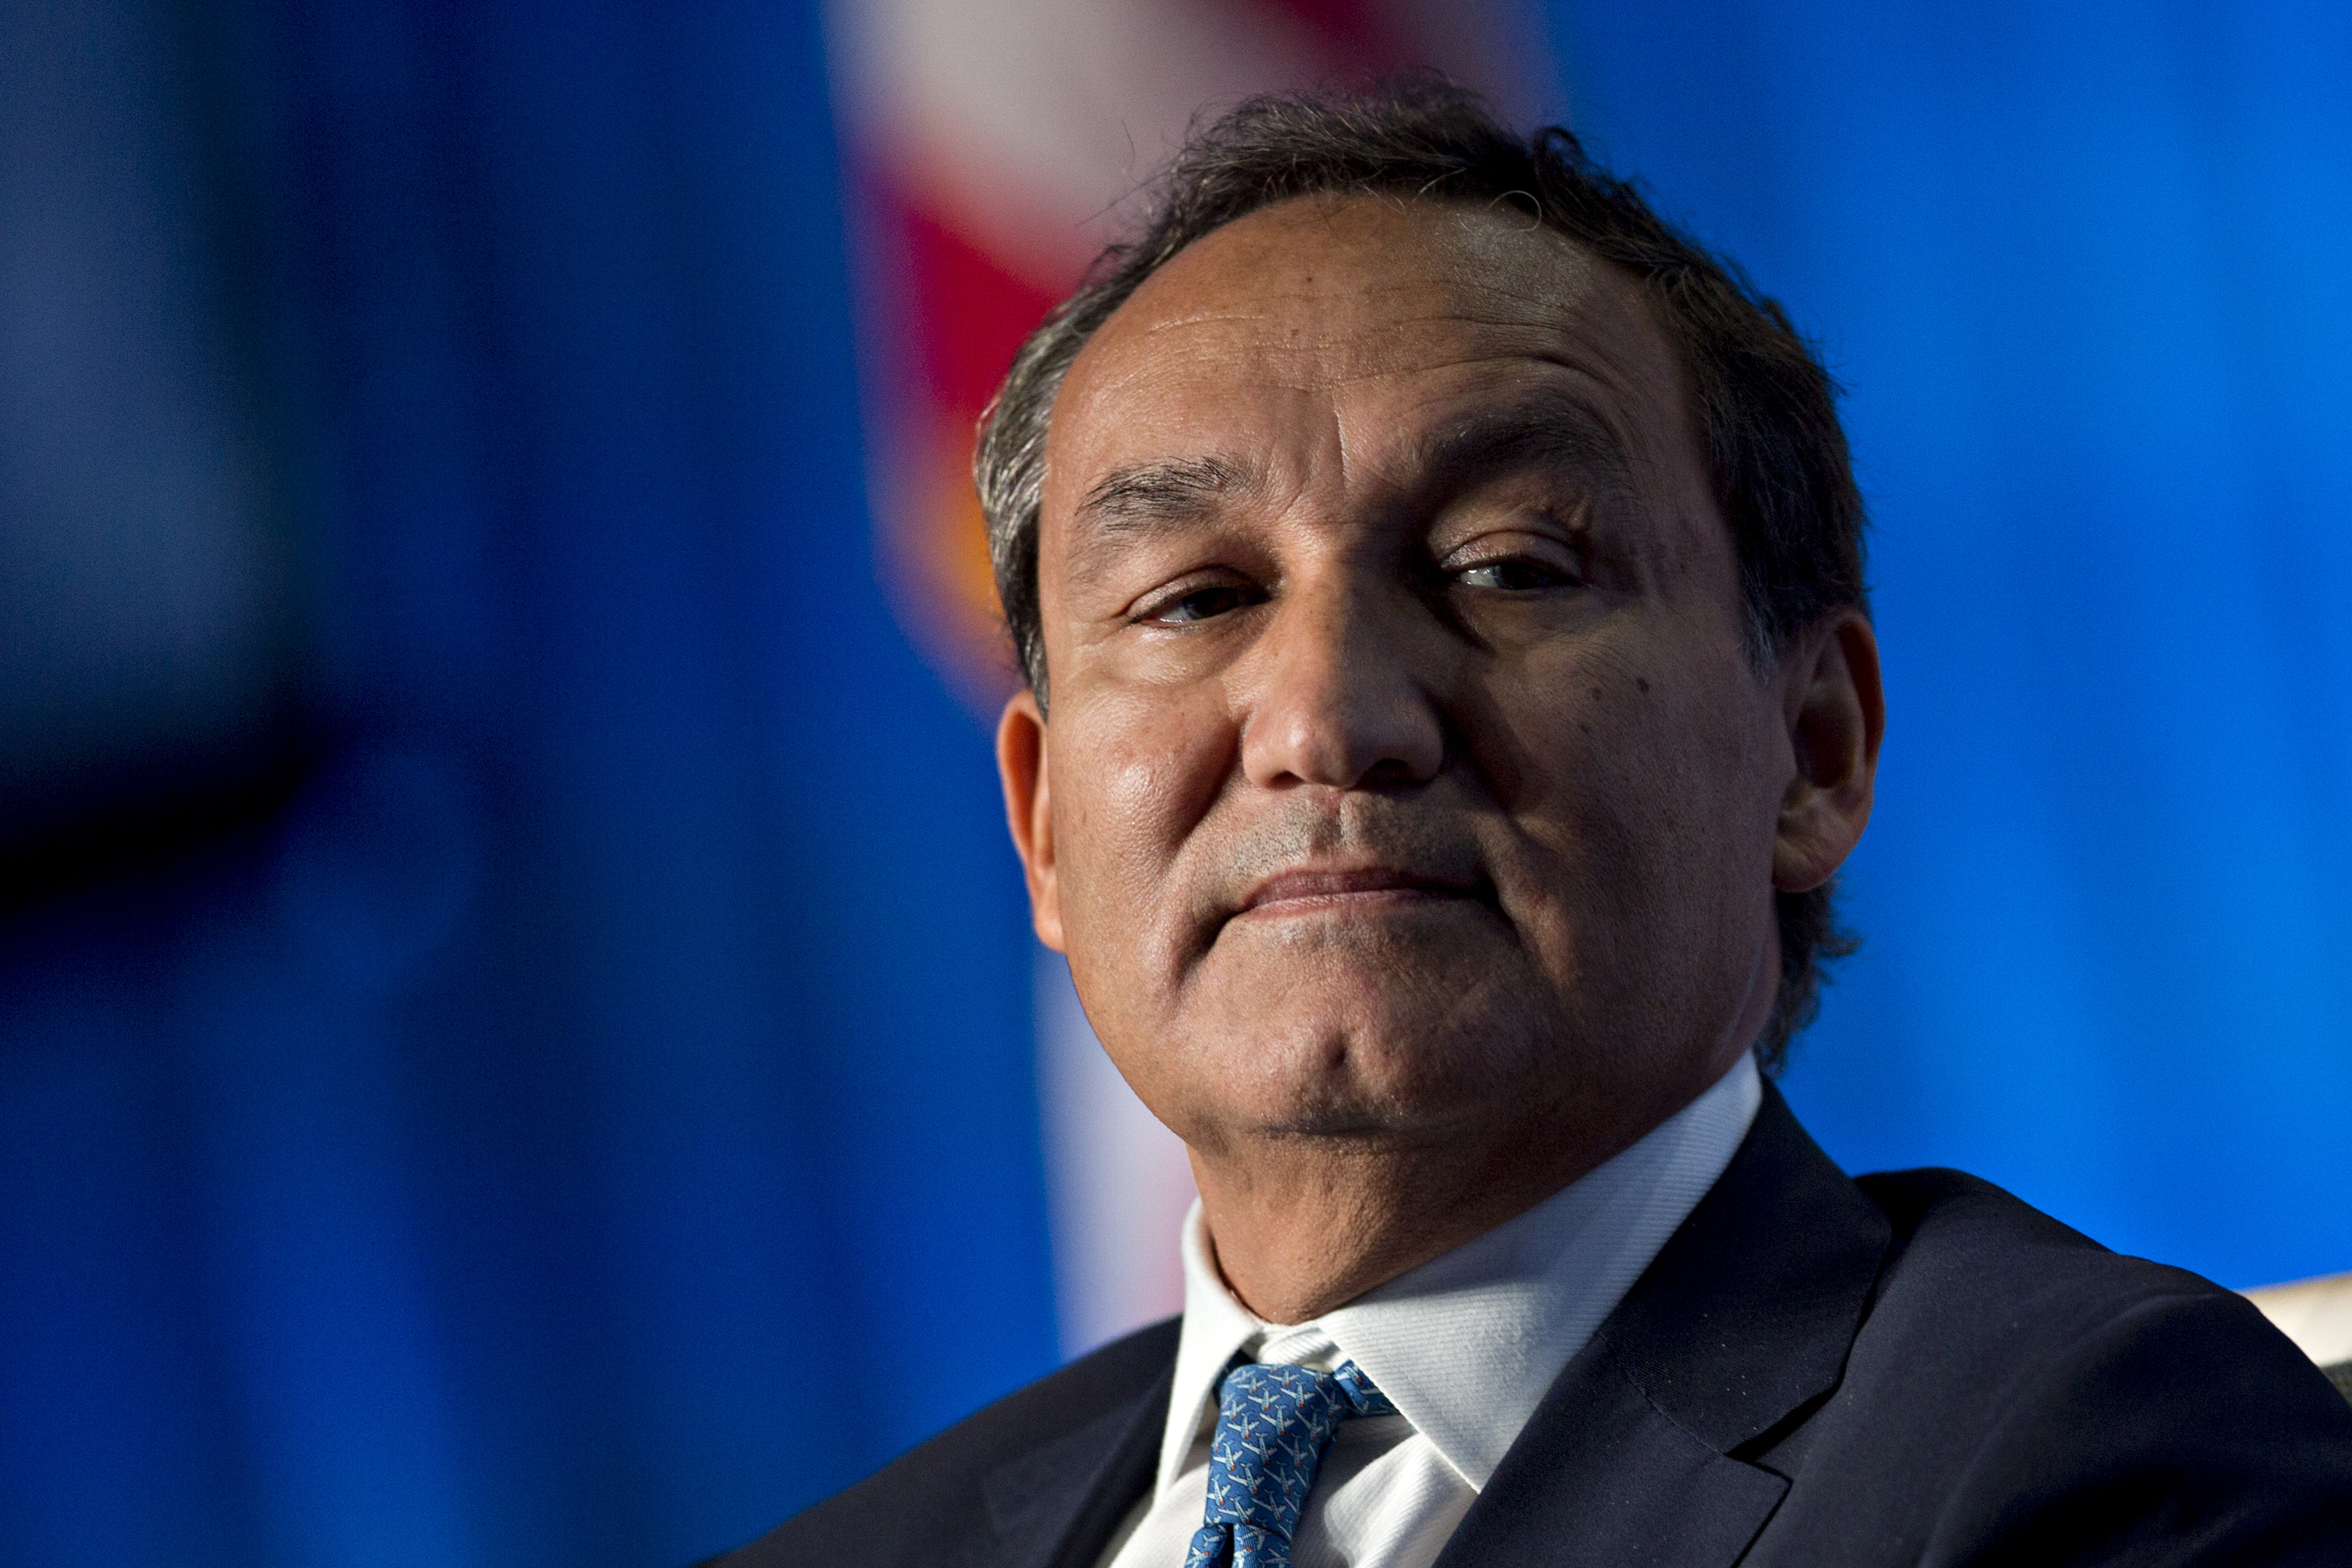 Oscar Munoz, chief executive officer of United Continental Holdings Inc., listens during a discussion at the U.S. Chamber of Commerce aviation summit in Washington, D.C., U.S., on Thursday, March 2, 2017.